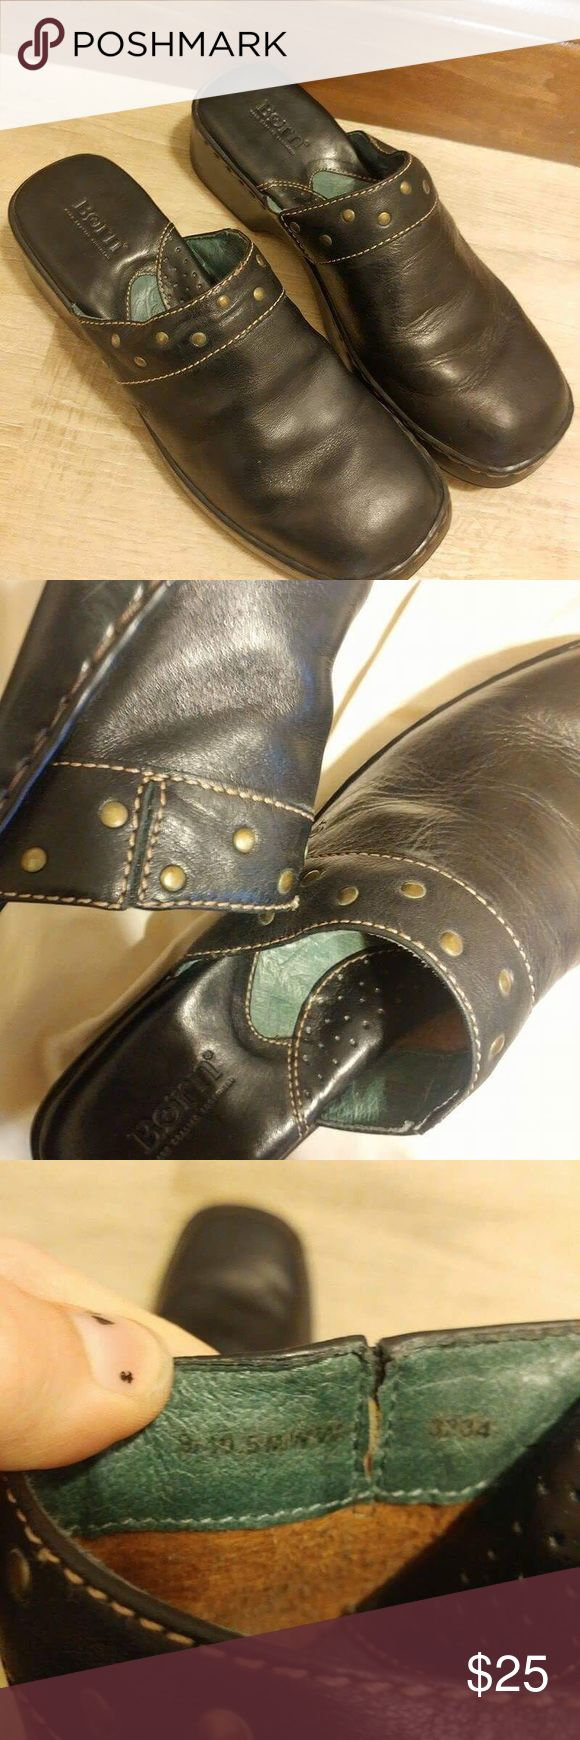 Born size 9 black mules clogs Born black size 9 mules clogs. Worn condition. Please be aware before purchase. Has scratches. Born Shoes Mules & Clogs